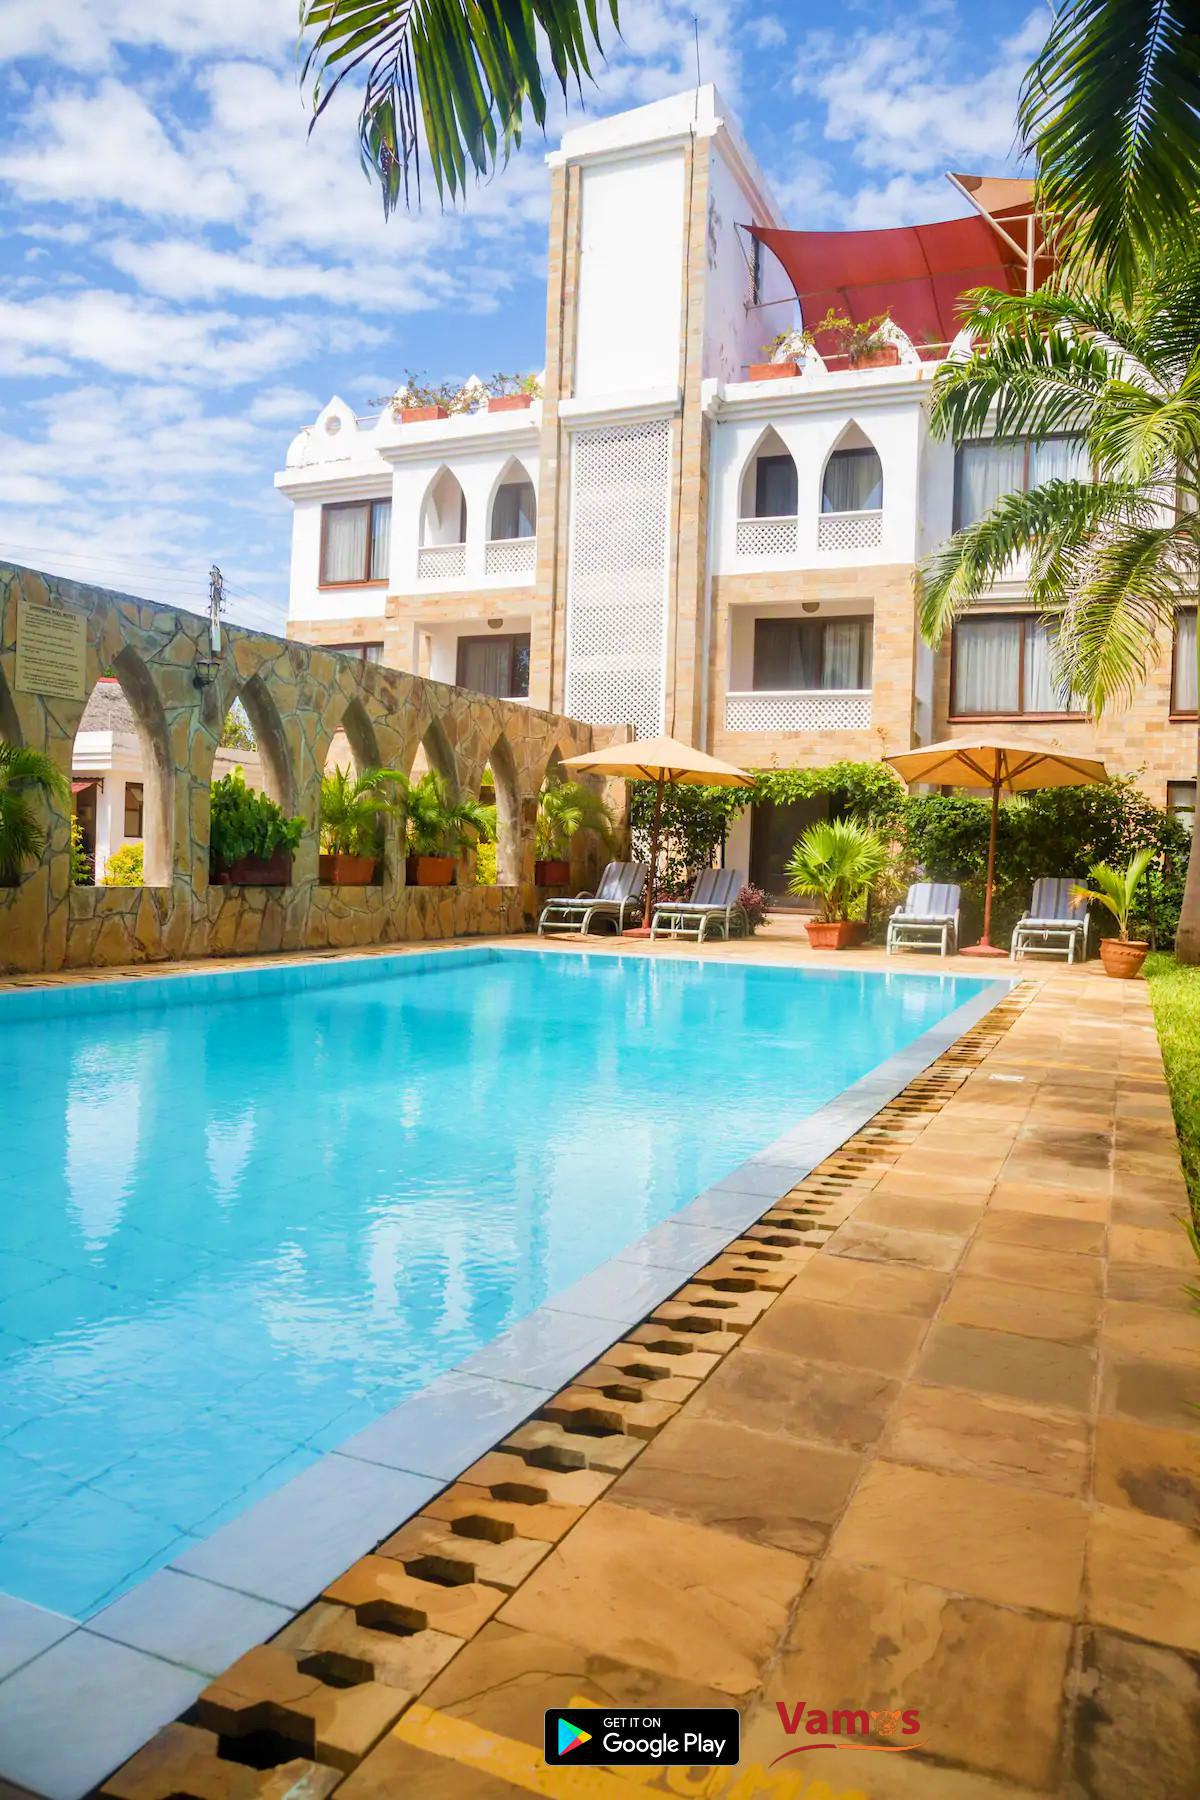 Diani Beach, Luxury 1 Bedroom from 6199 PP for 3 Days 2 Nights, self drive from 2299 per person!